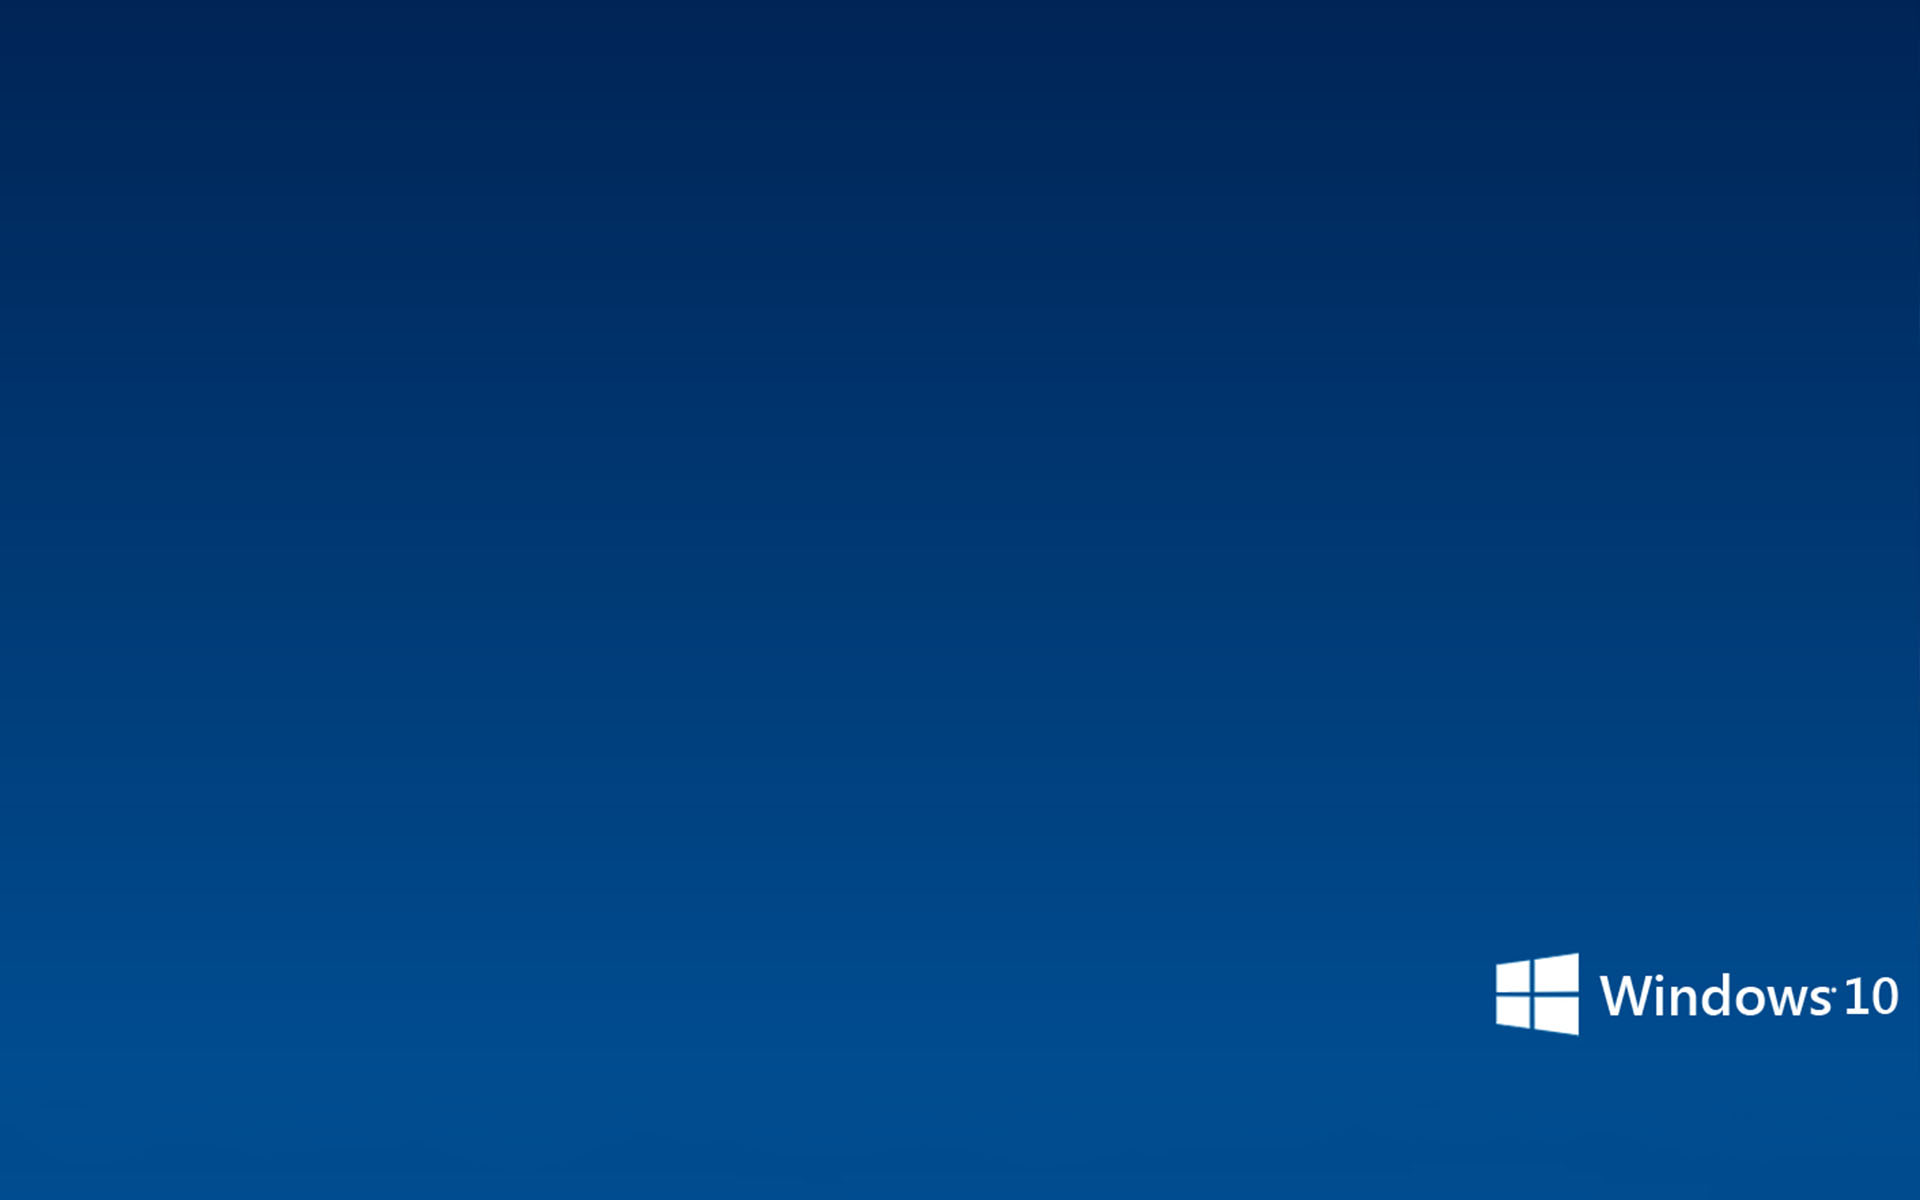 Simple Microsoft Windows 10 Wallpaper   Wallpapers 1920x1200